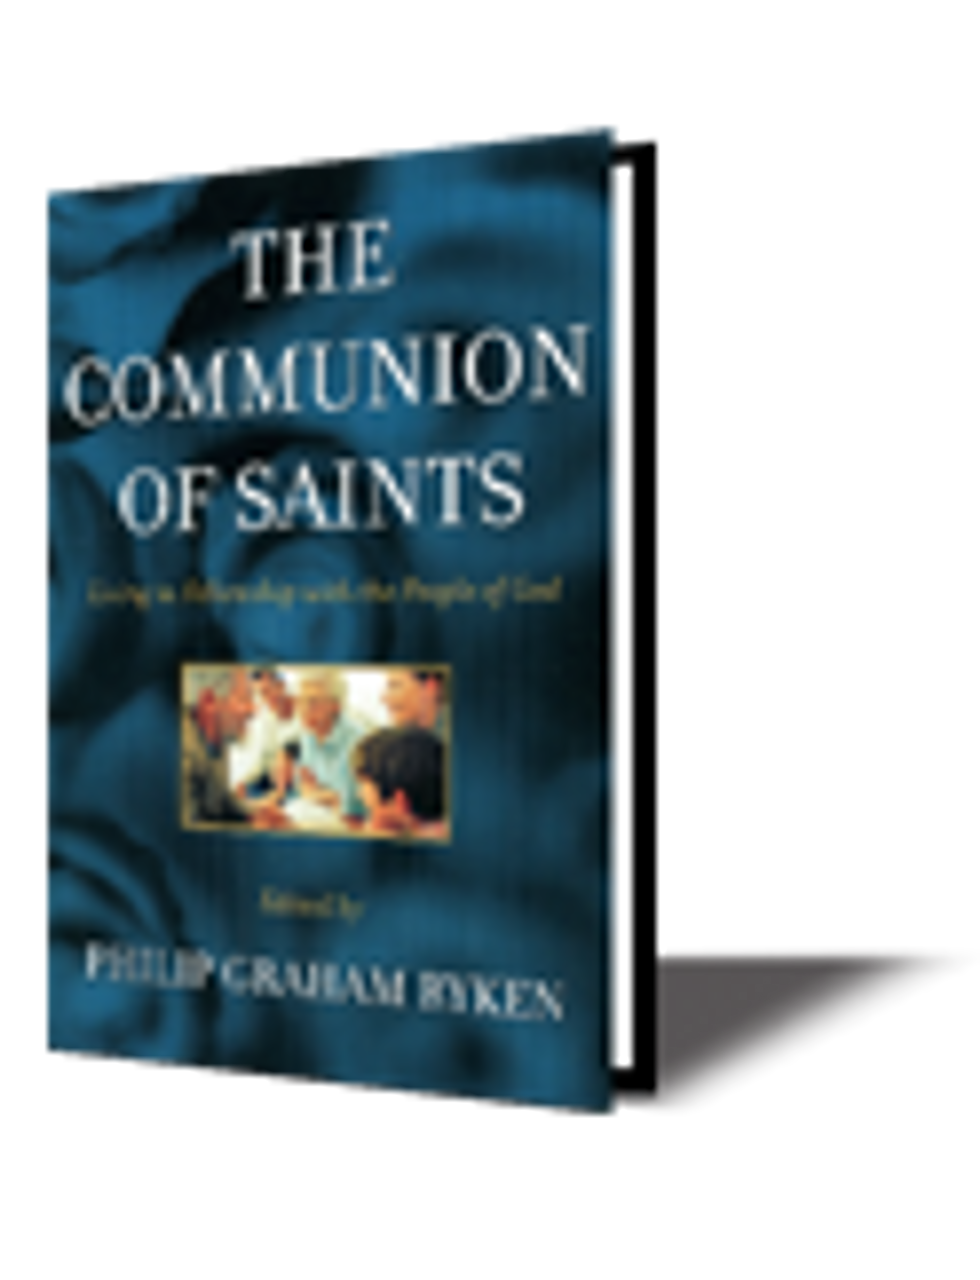 The Communion of Saints: Living in Fellowship with the People of God (Paperback)